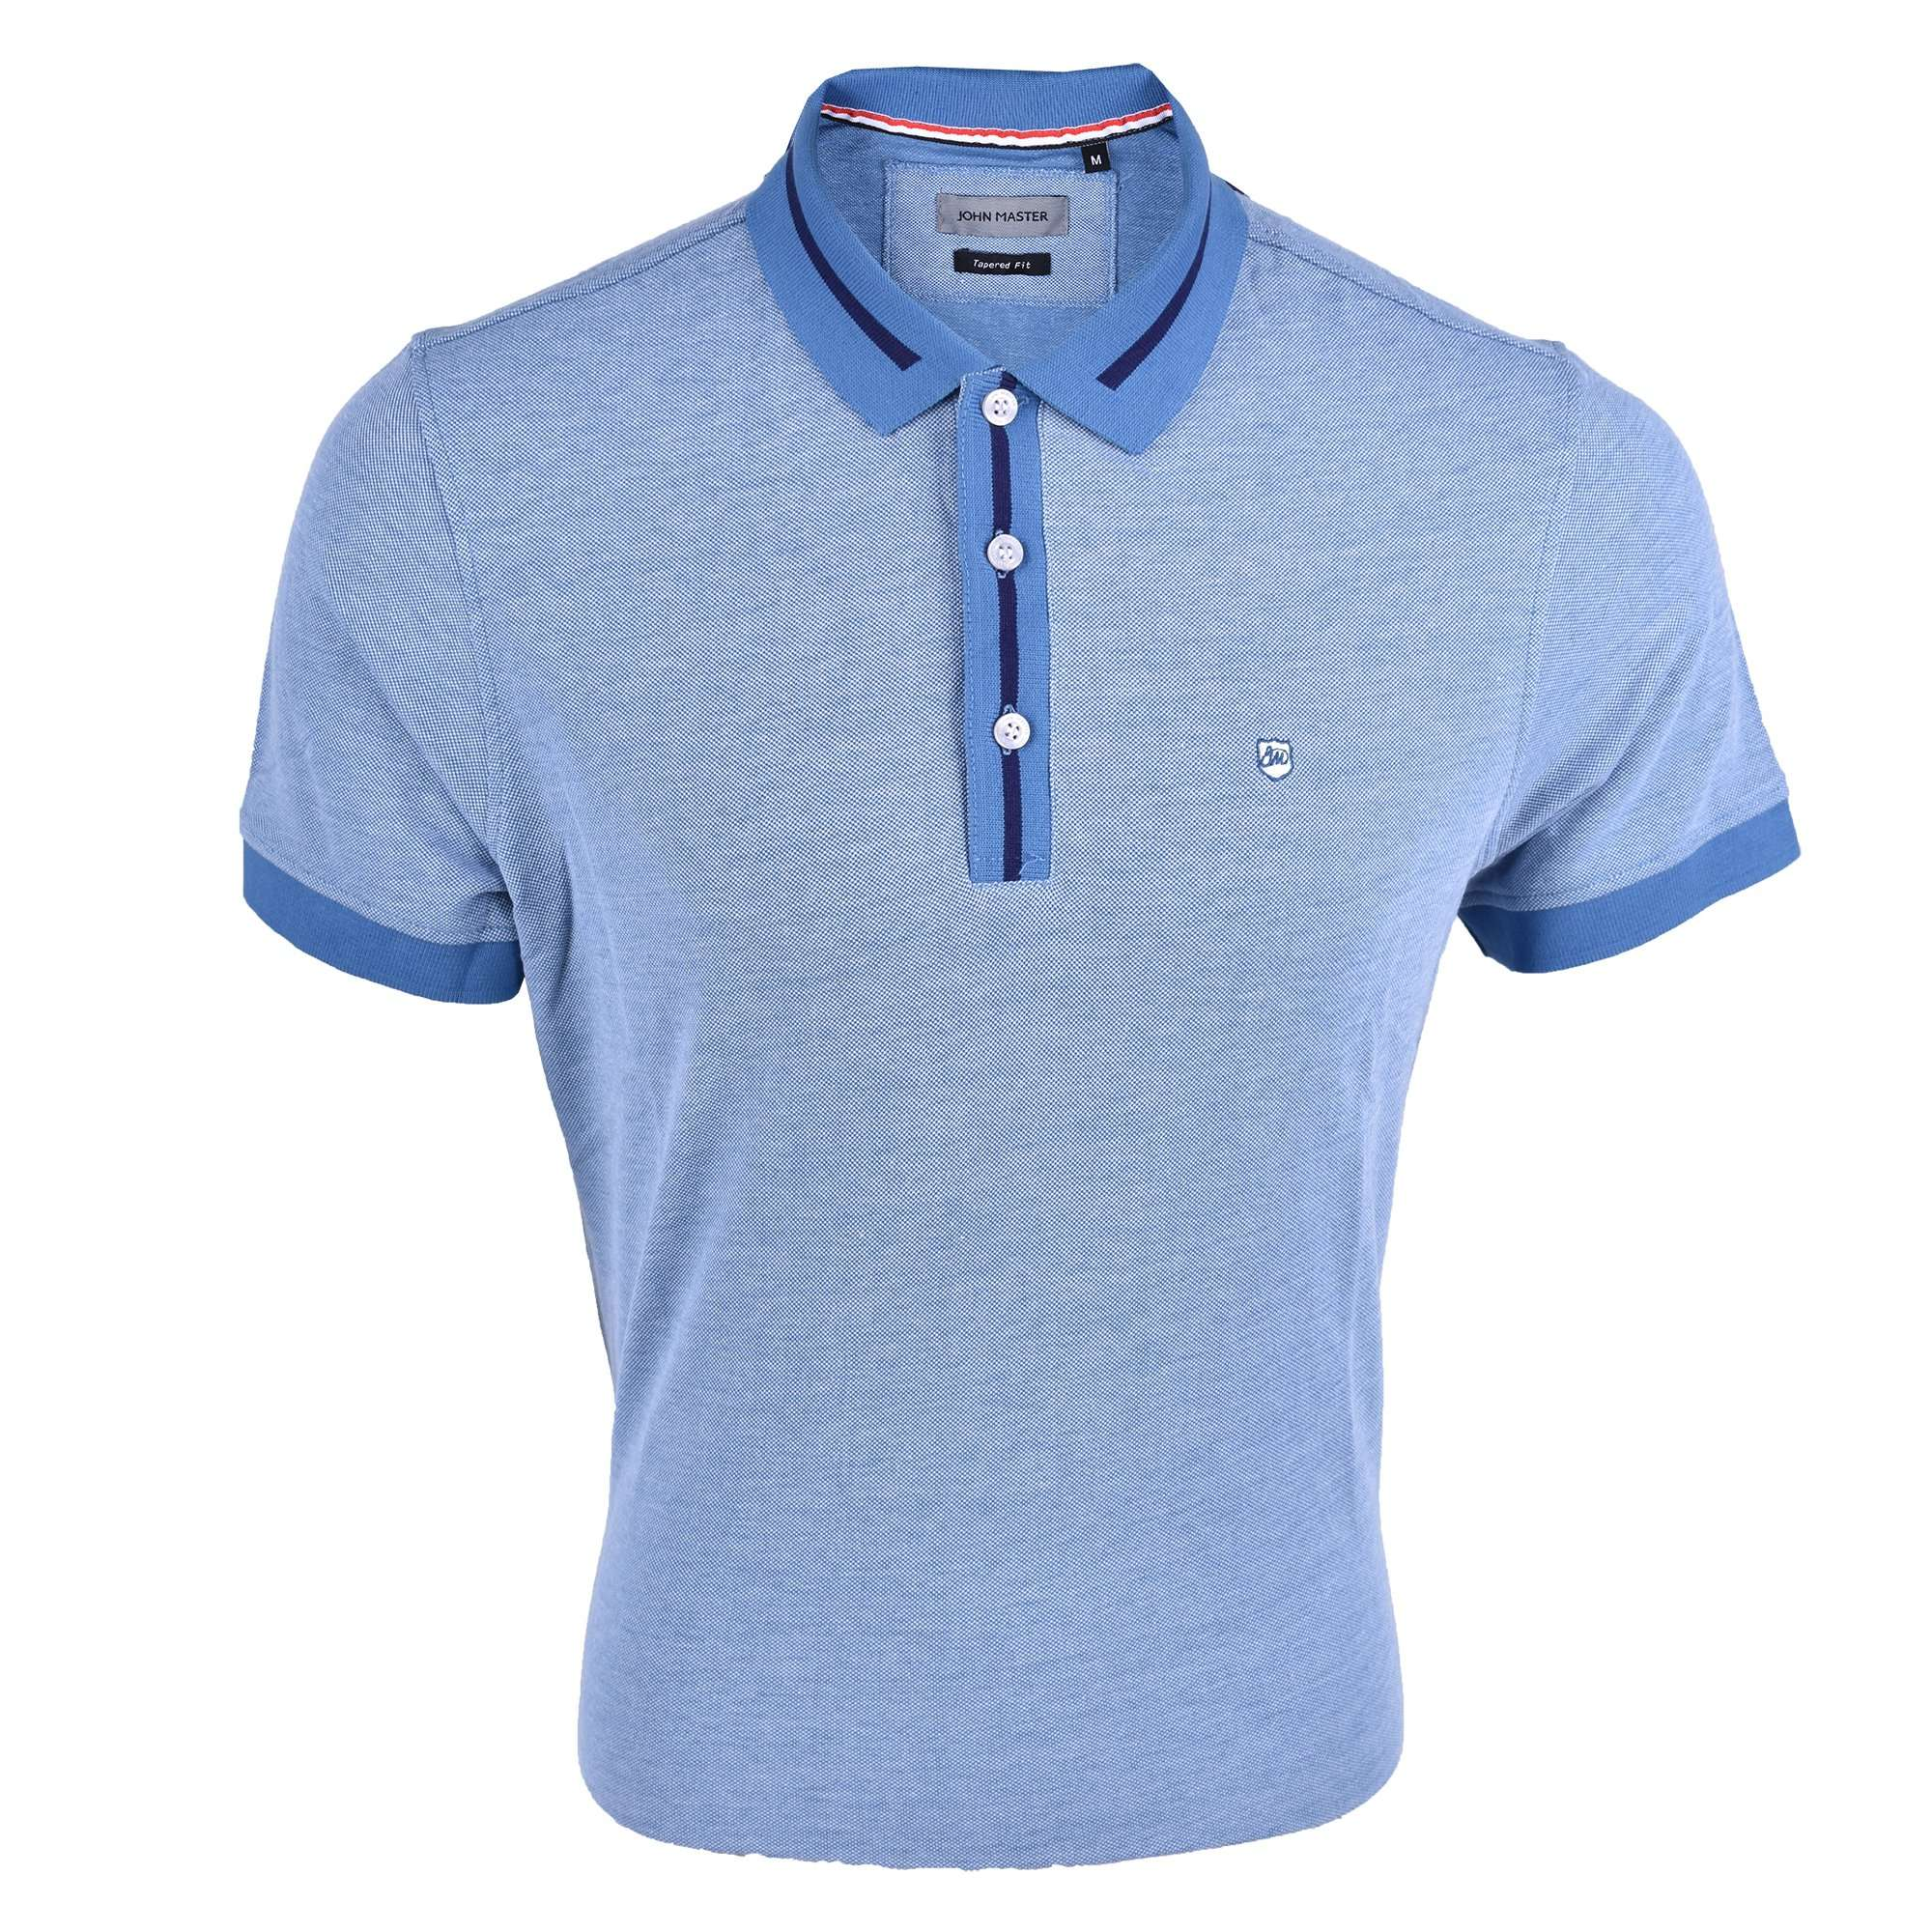 John Master Tapered Fit Cotton Short Sleeve Polo Tee Blue 8287008-L5 : Buy John Master online at CMG.MY